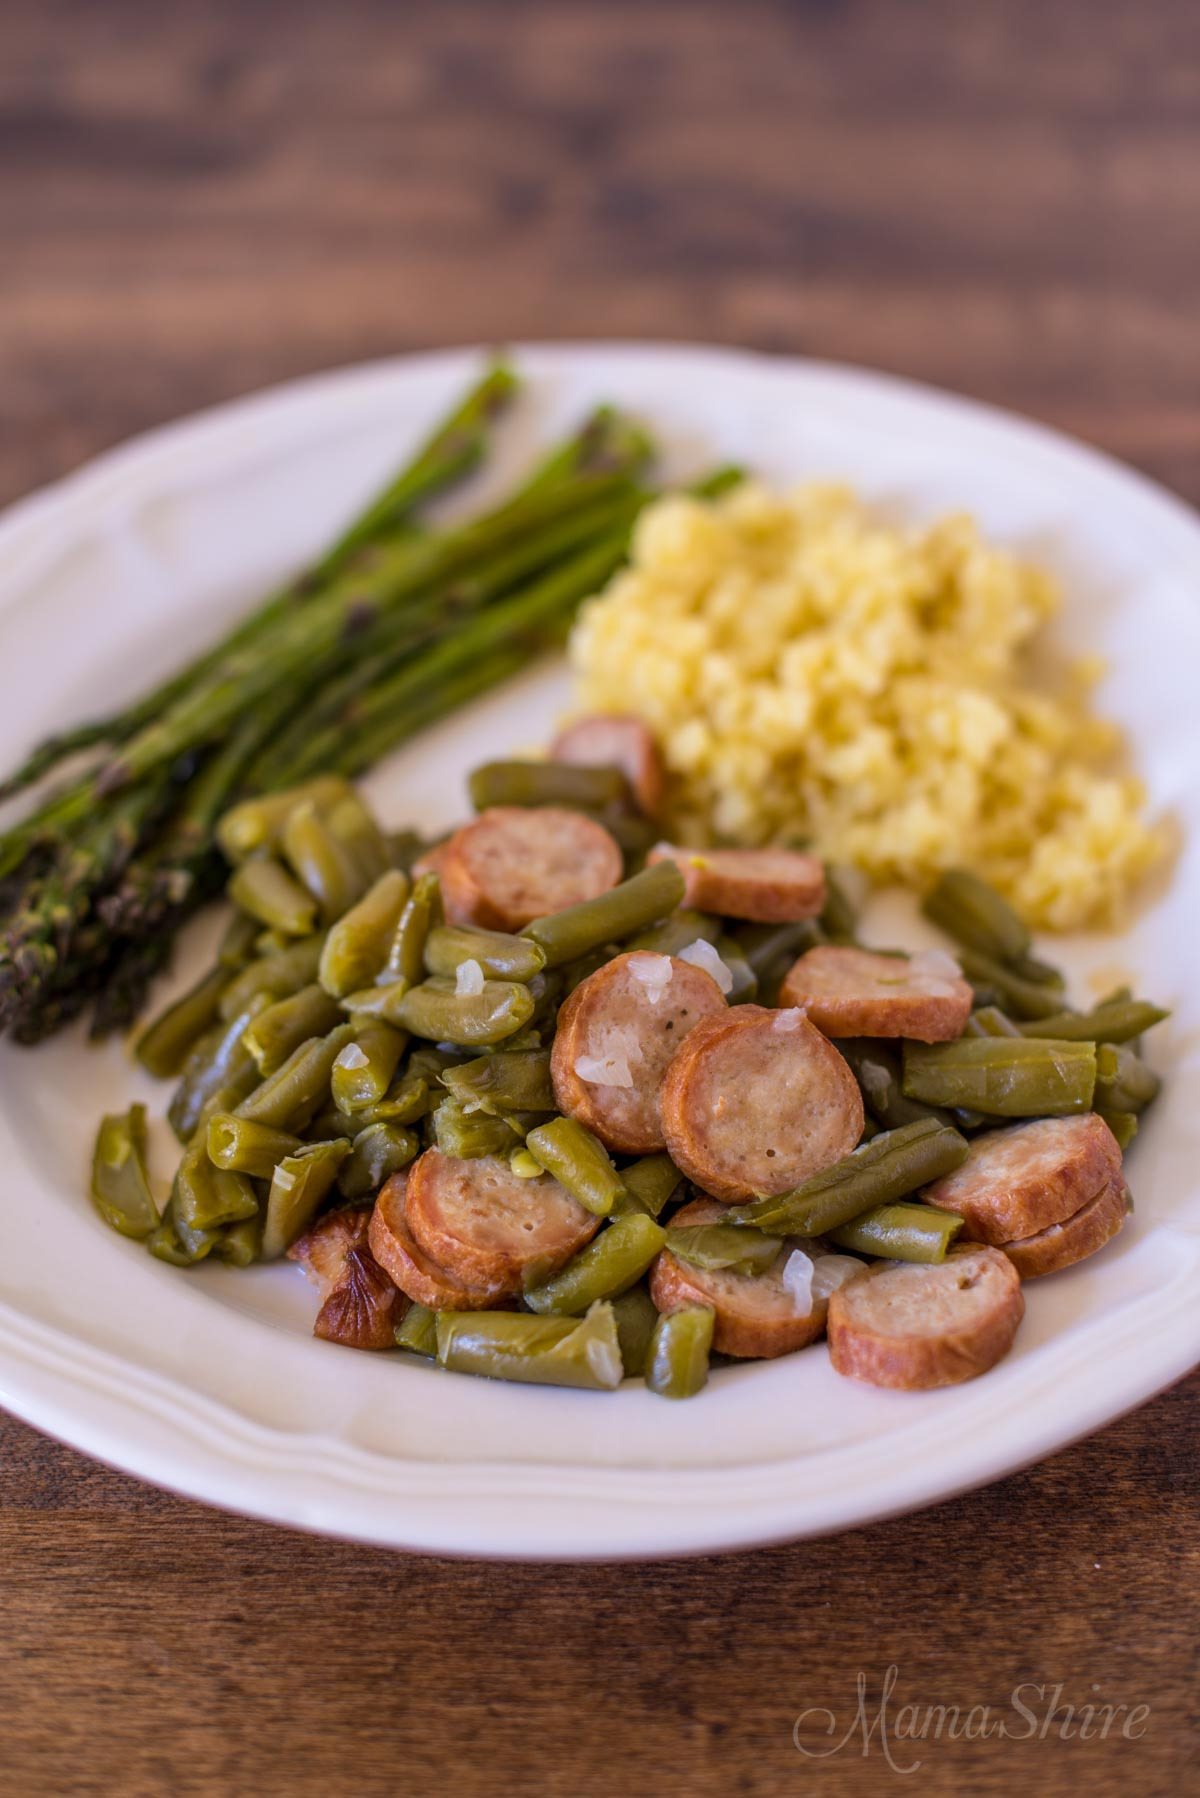 Farmhouse Beans & Sausage - Gluten-free, Low-carb, Instant Pot